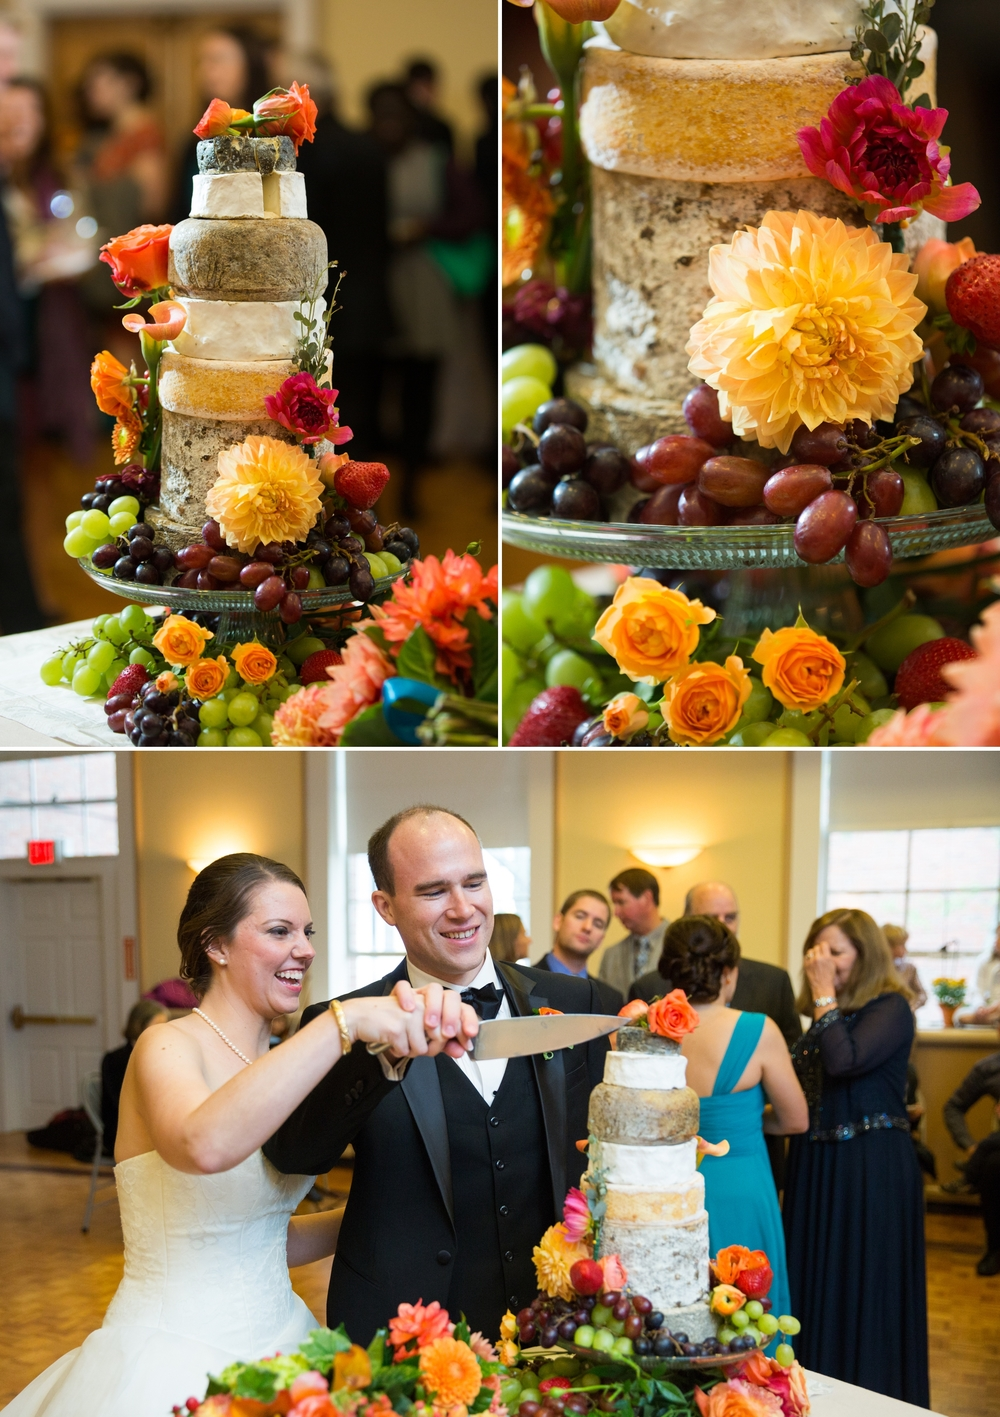 HarvardFacultyClubWedding_BostonMAFallWedding_MichelleGirardPhotography24.jpg